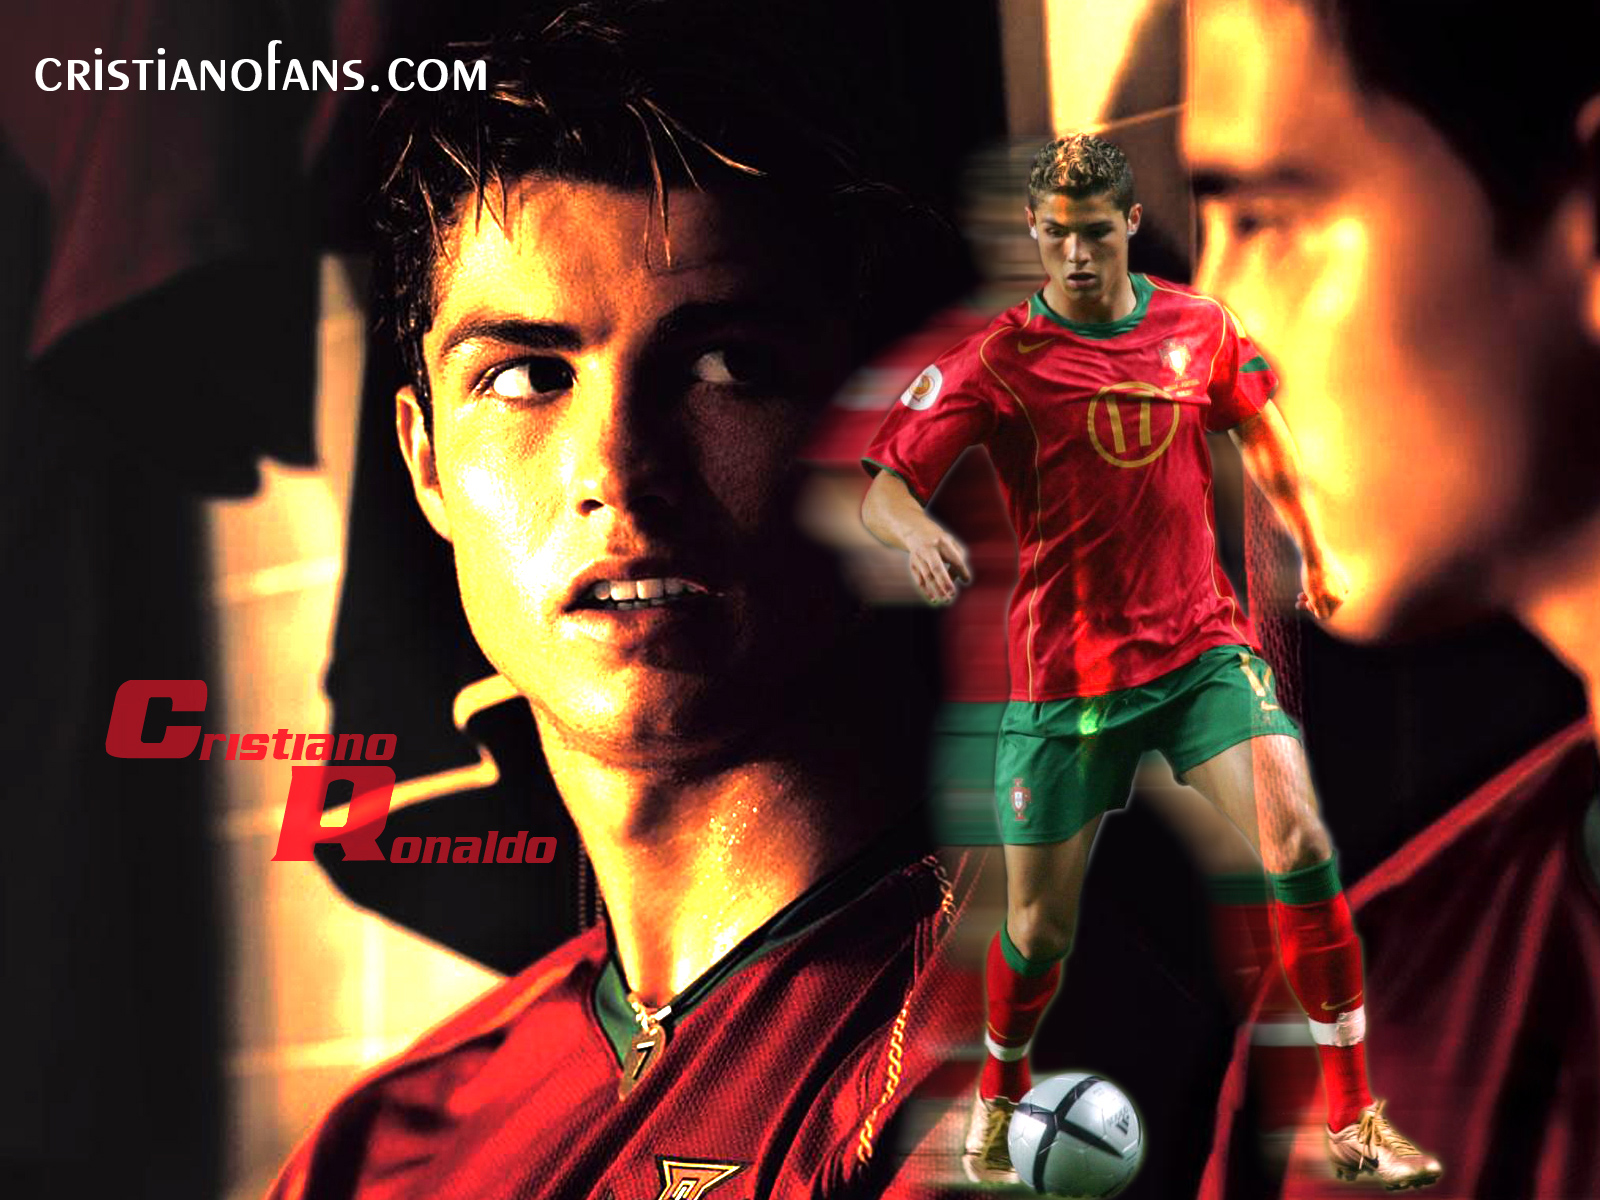 Cristiano Ronaldo Wallpaper 2009 Images & Pictures - Becuo